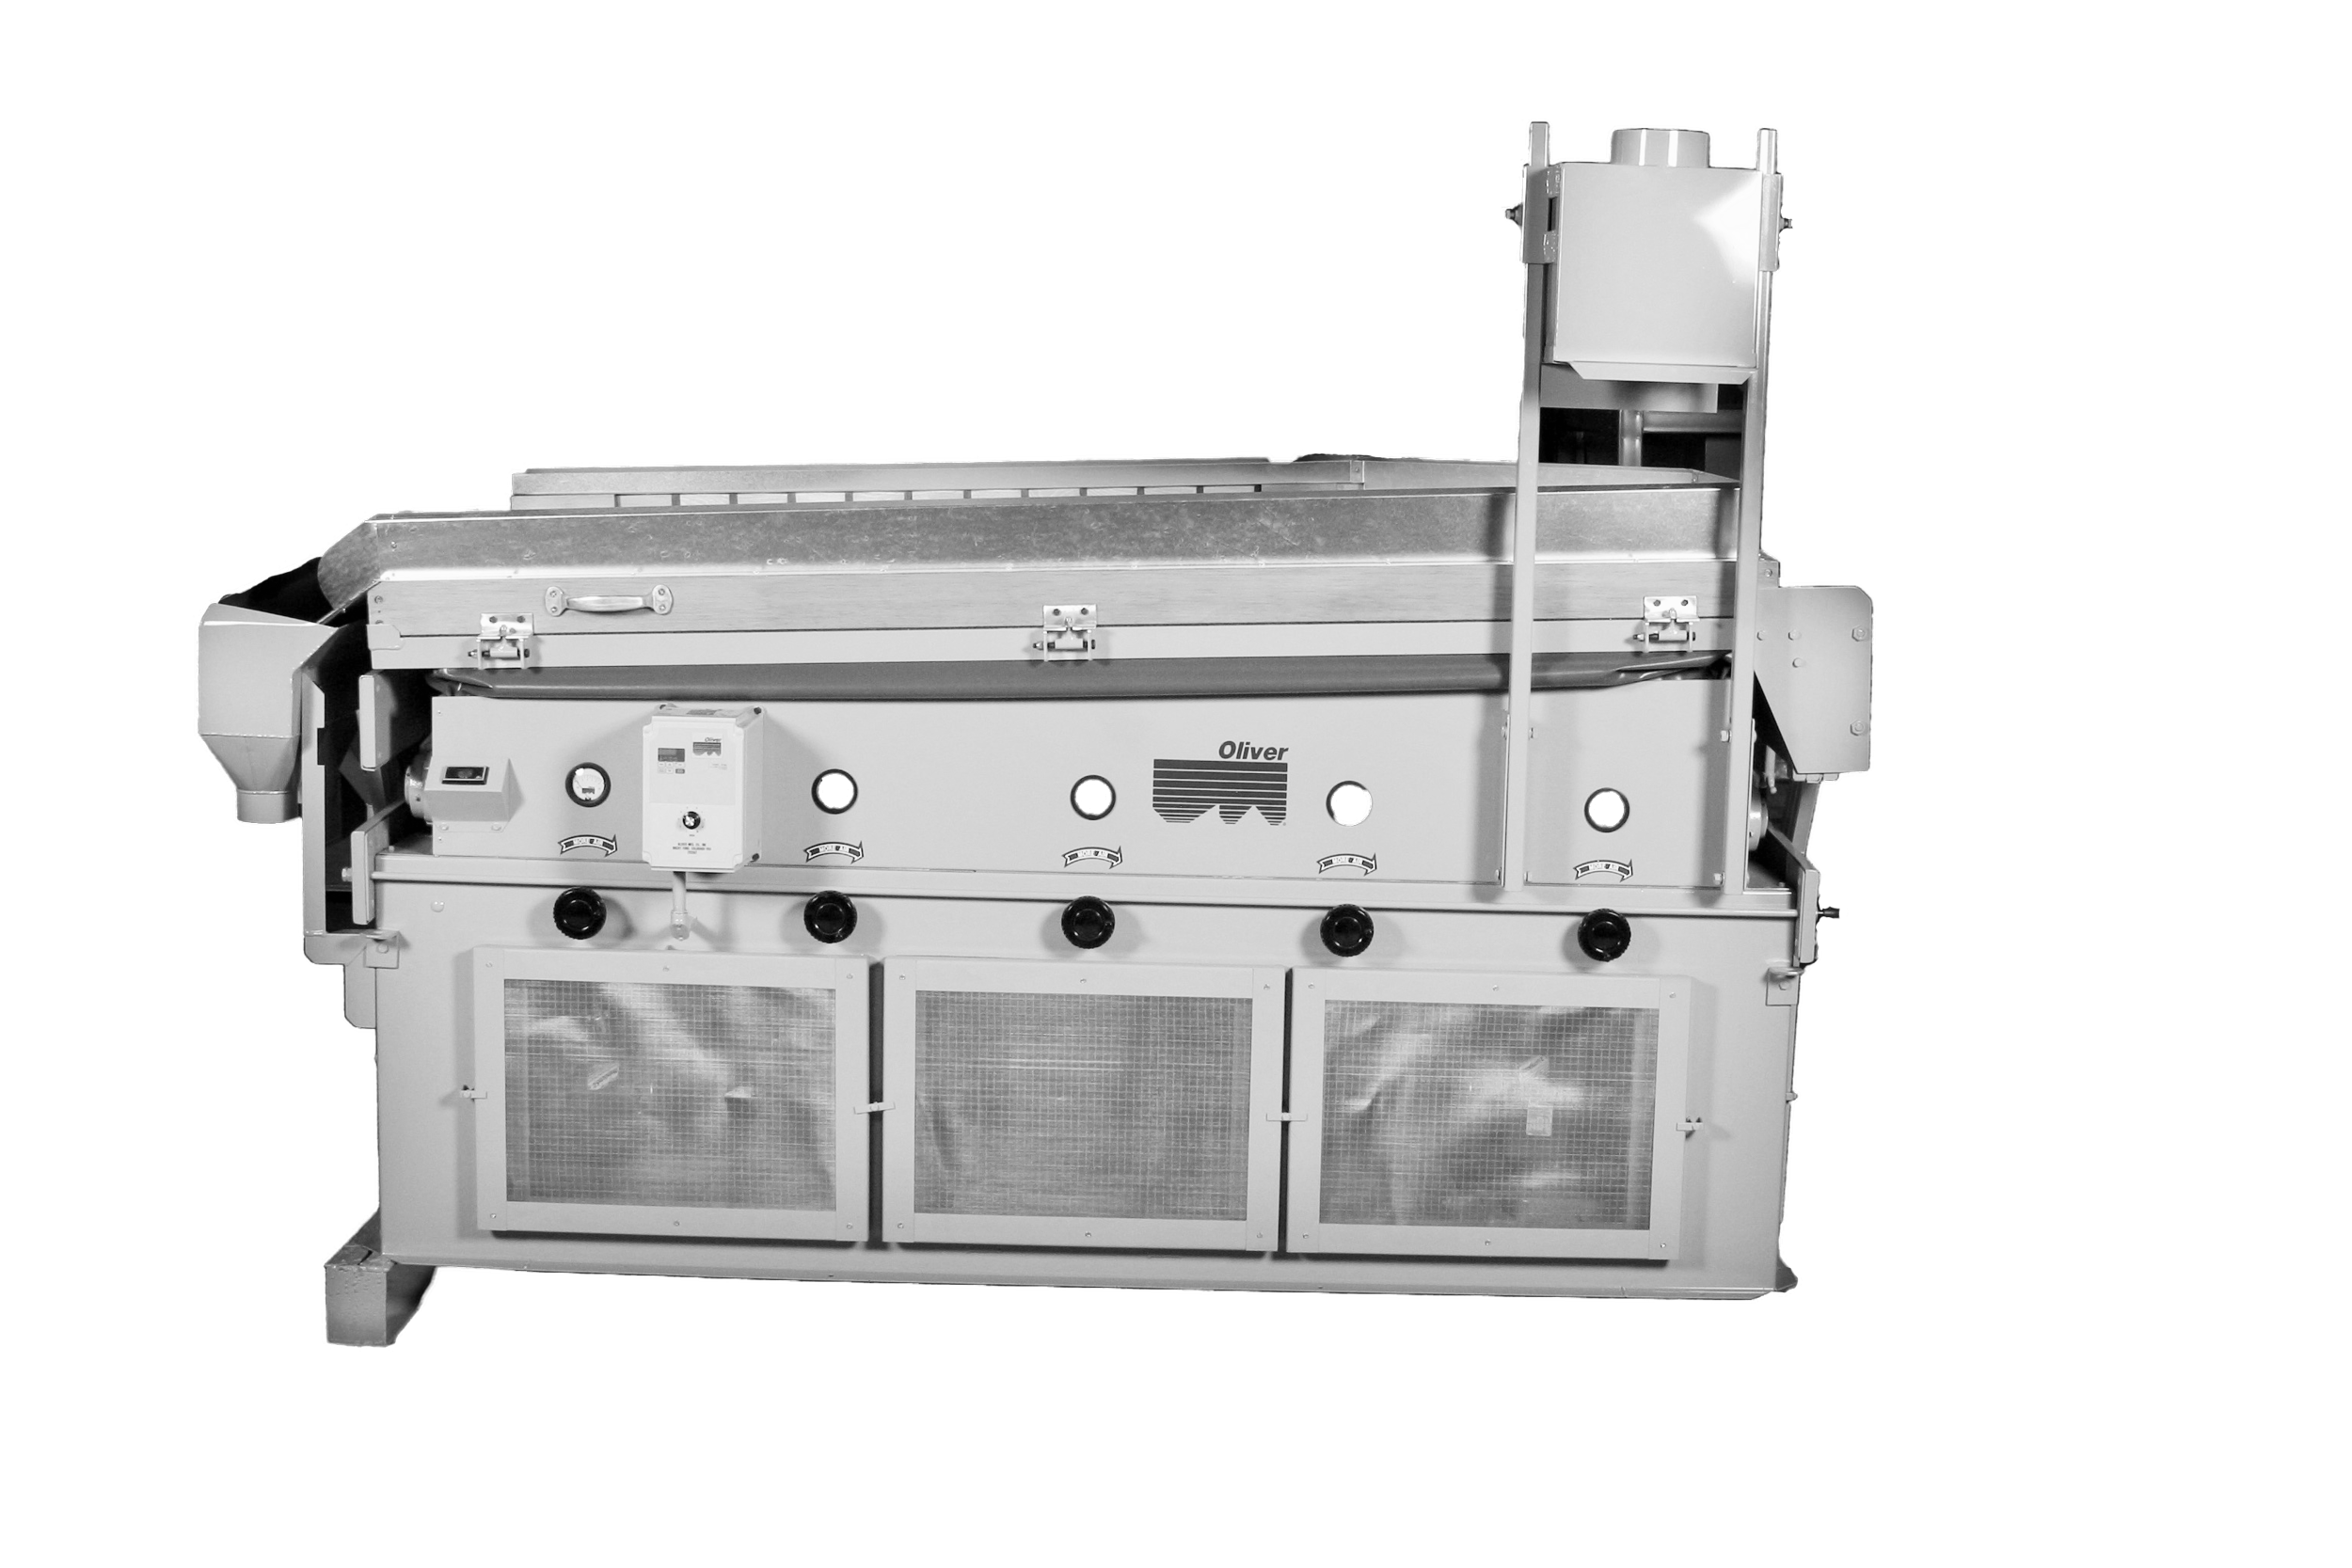 Used-Equipment-1 (2).png